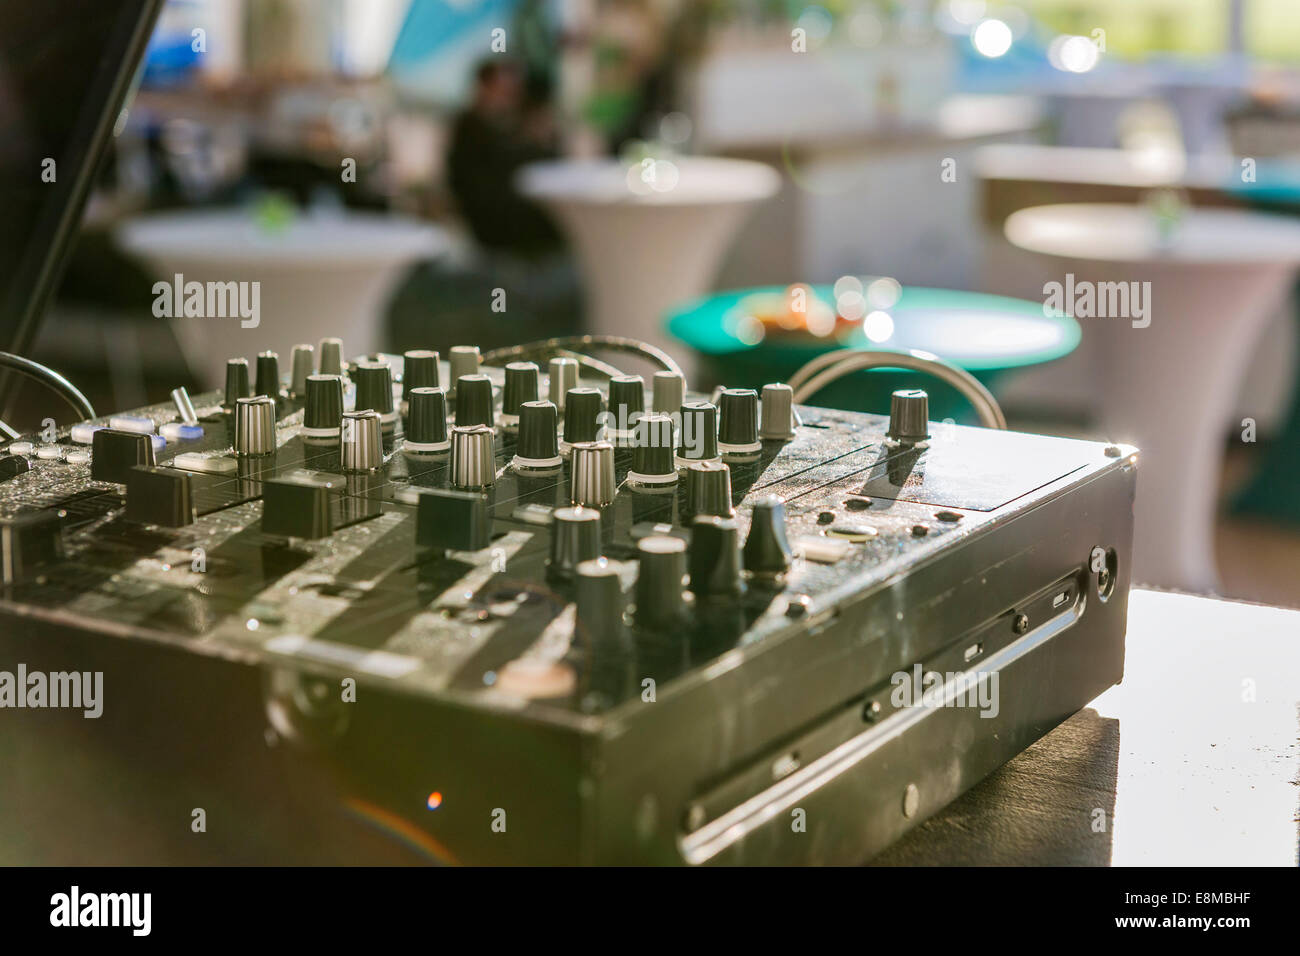 Image of a dusty mixer in the back light - Stock Image